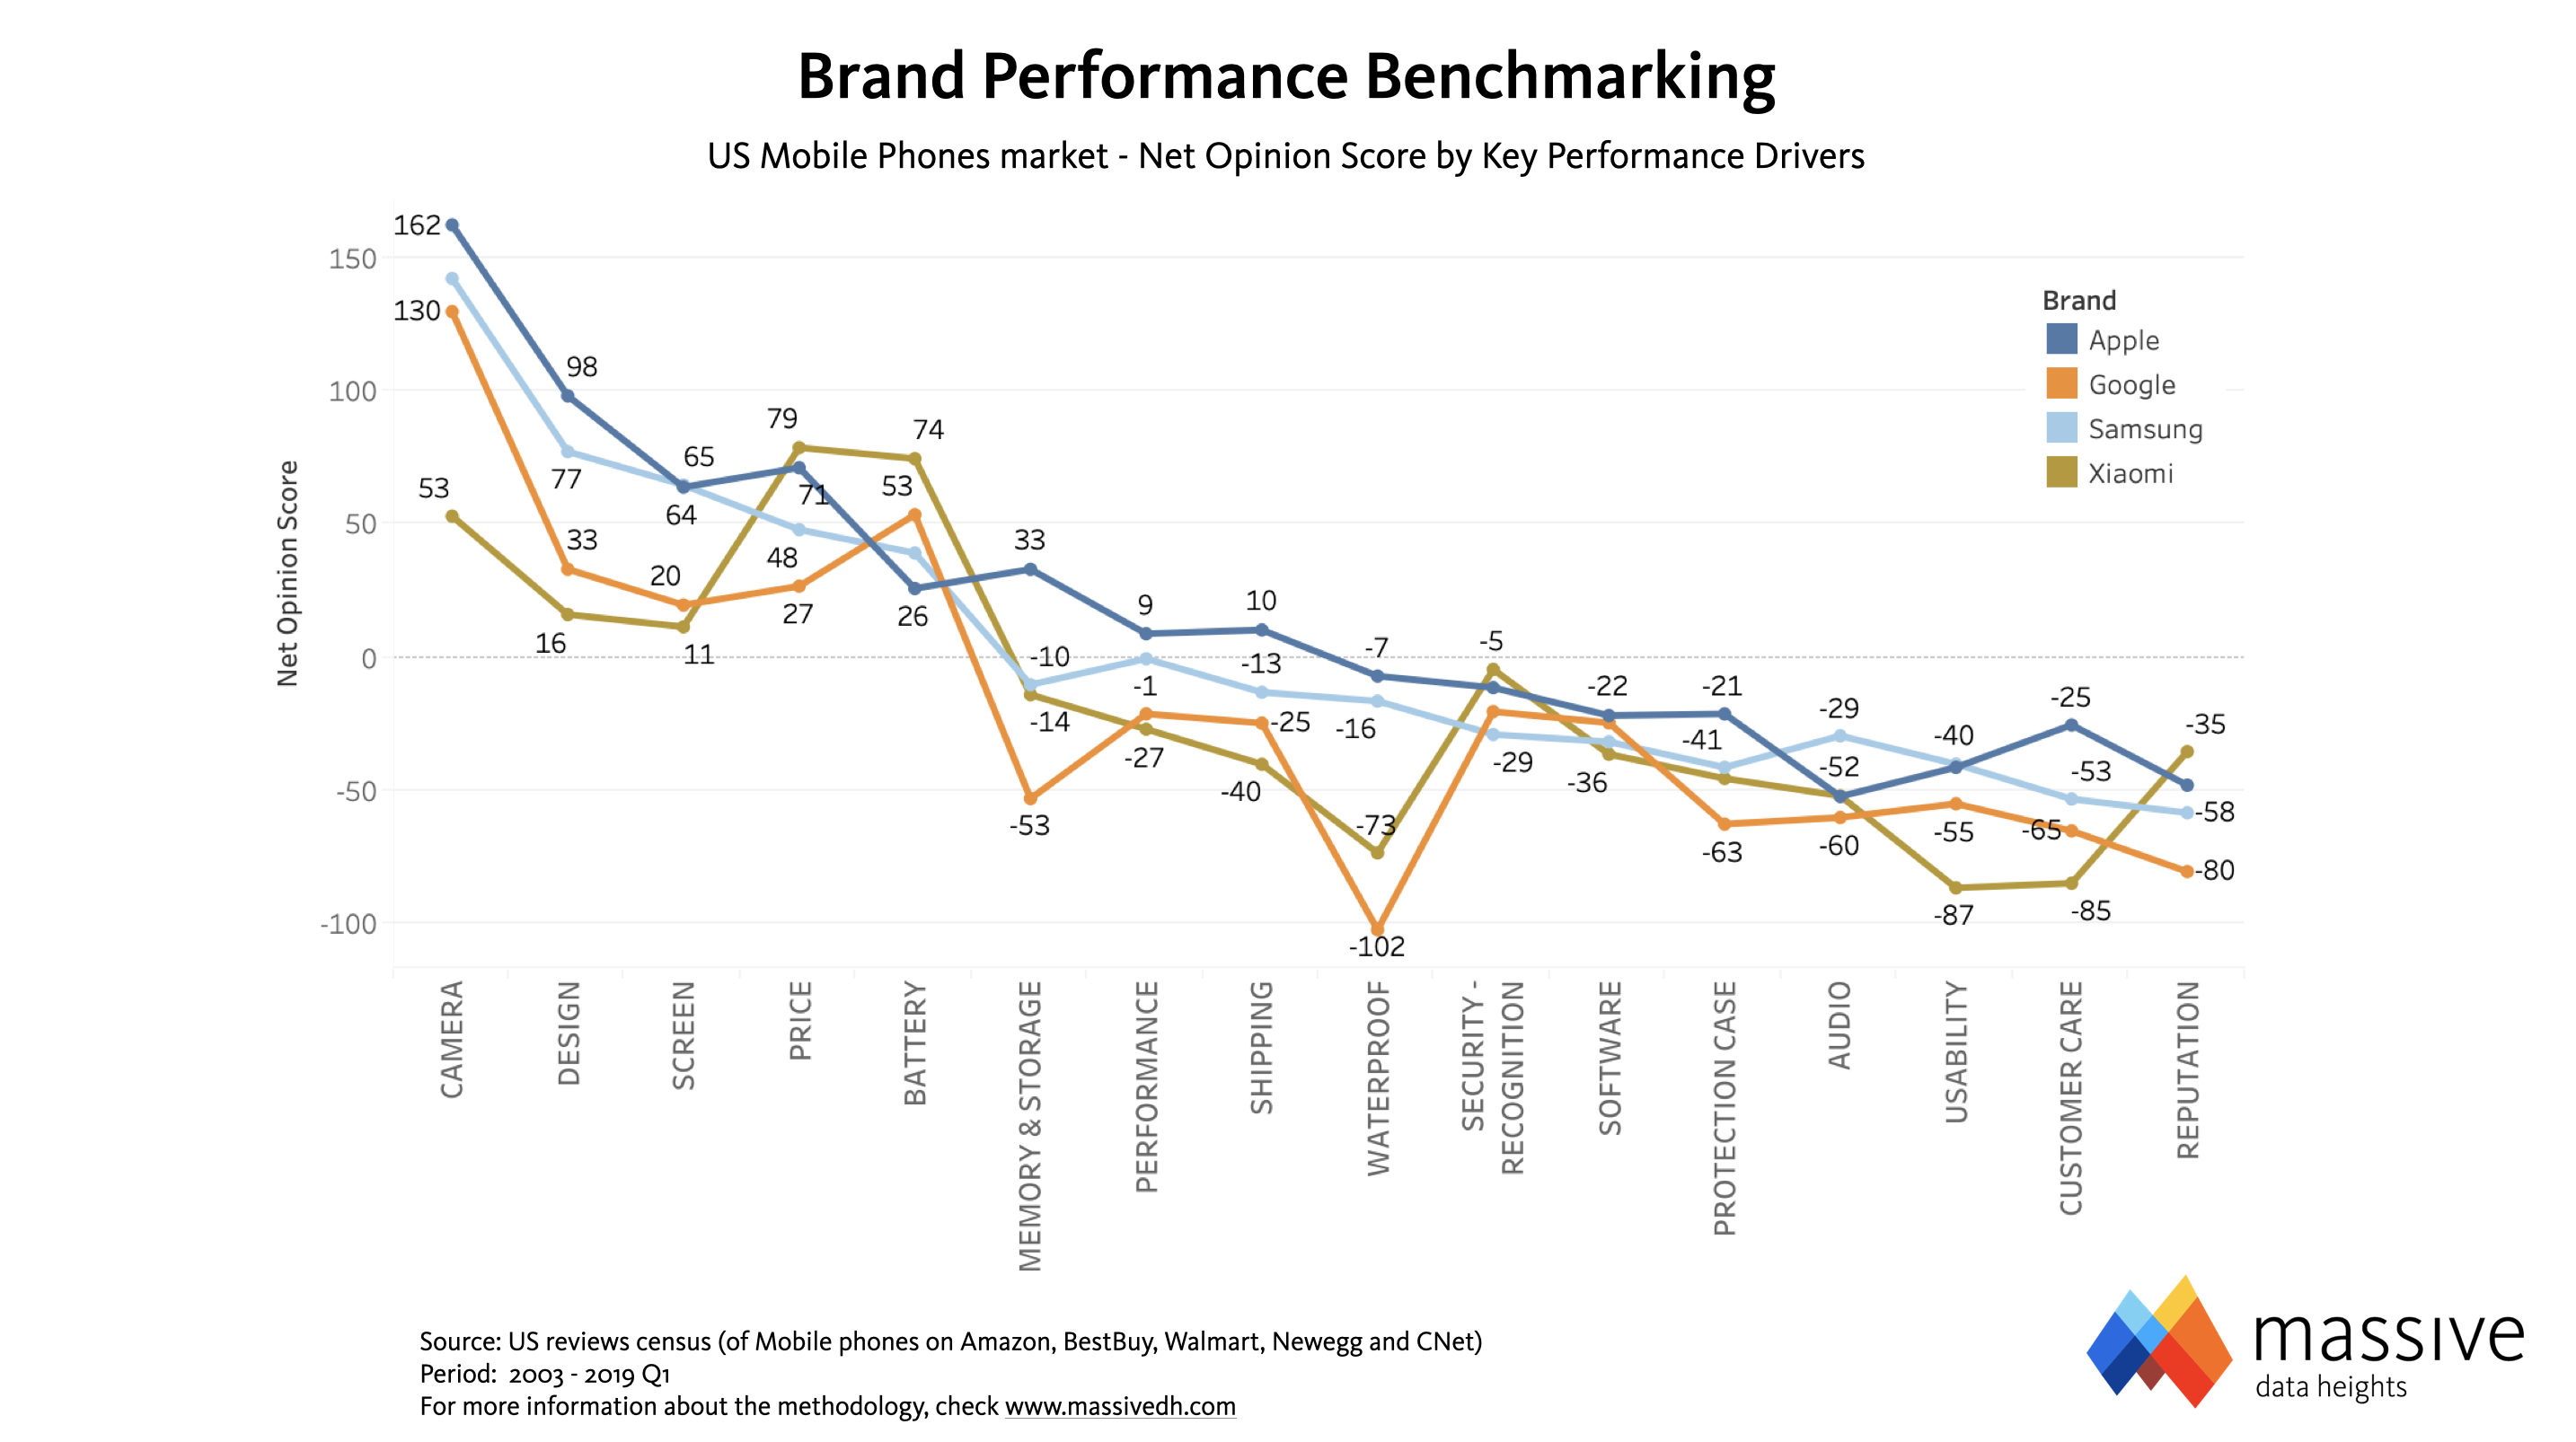 MASSIVE-Brand Performance Profiling and Benchmarking